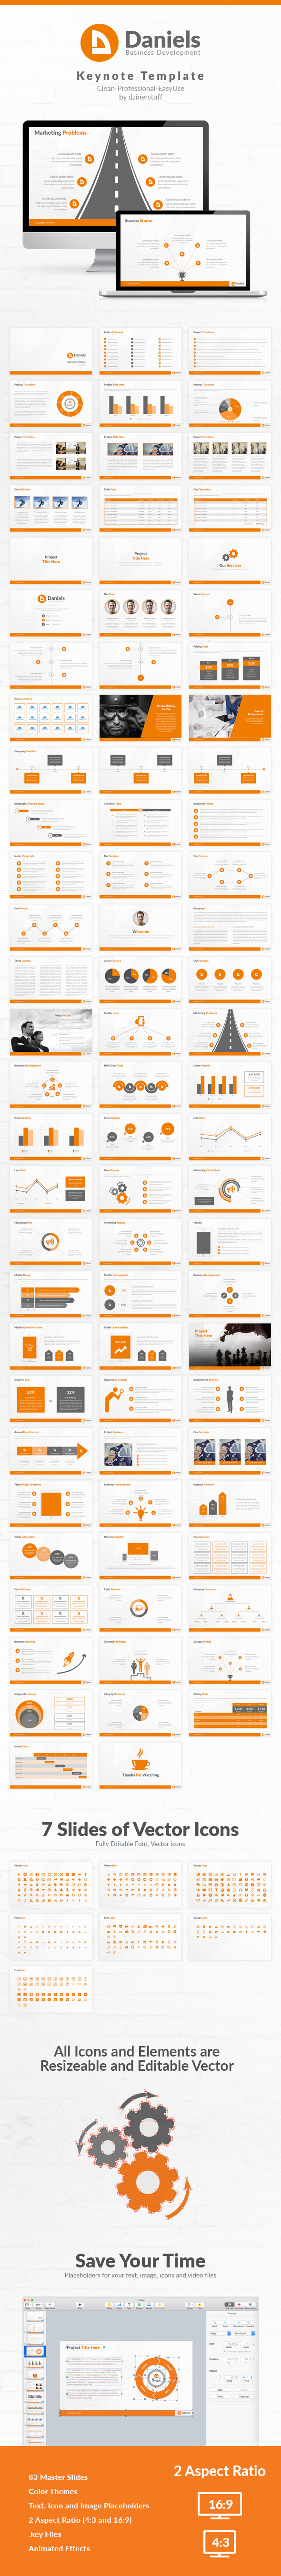 GraphicRiver Daniels Keynote Presentation Template 11770699